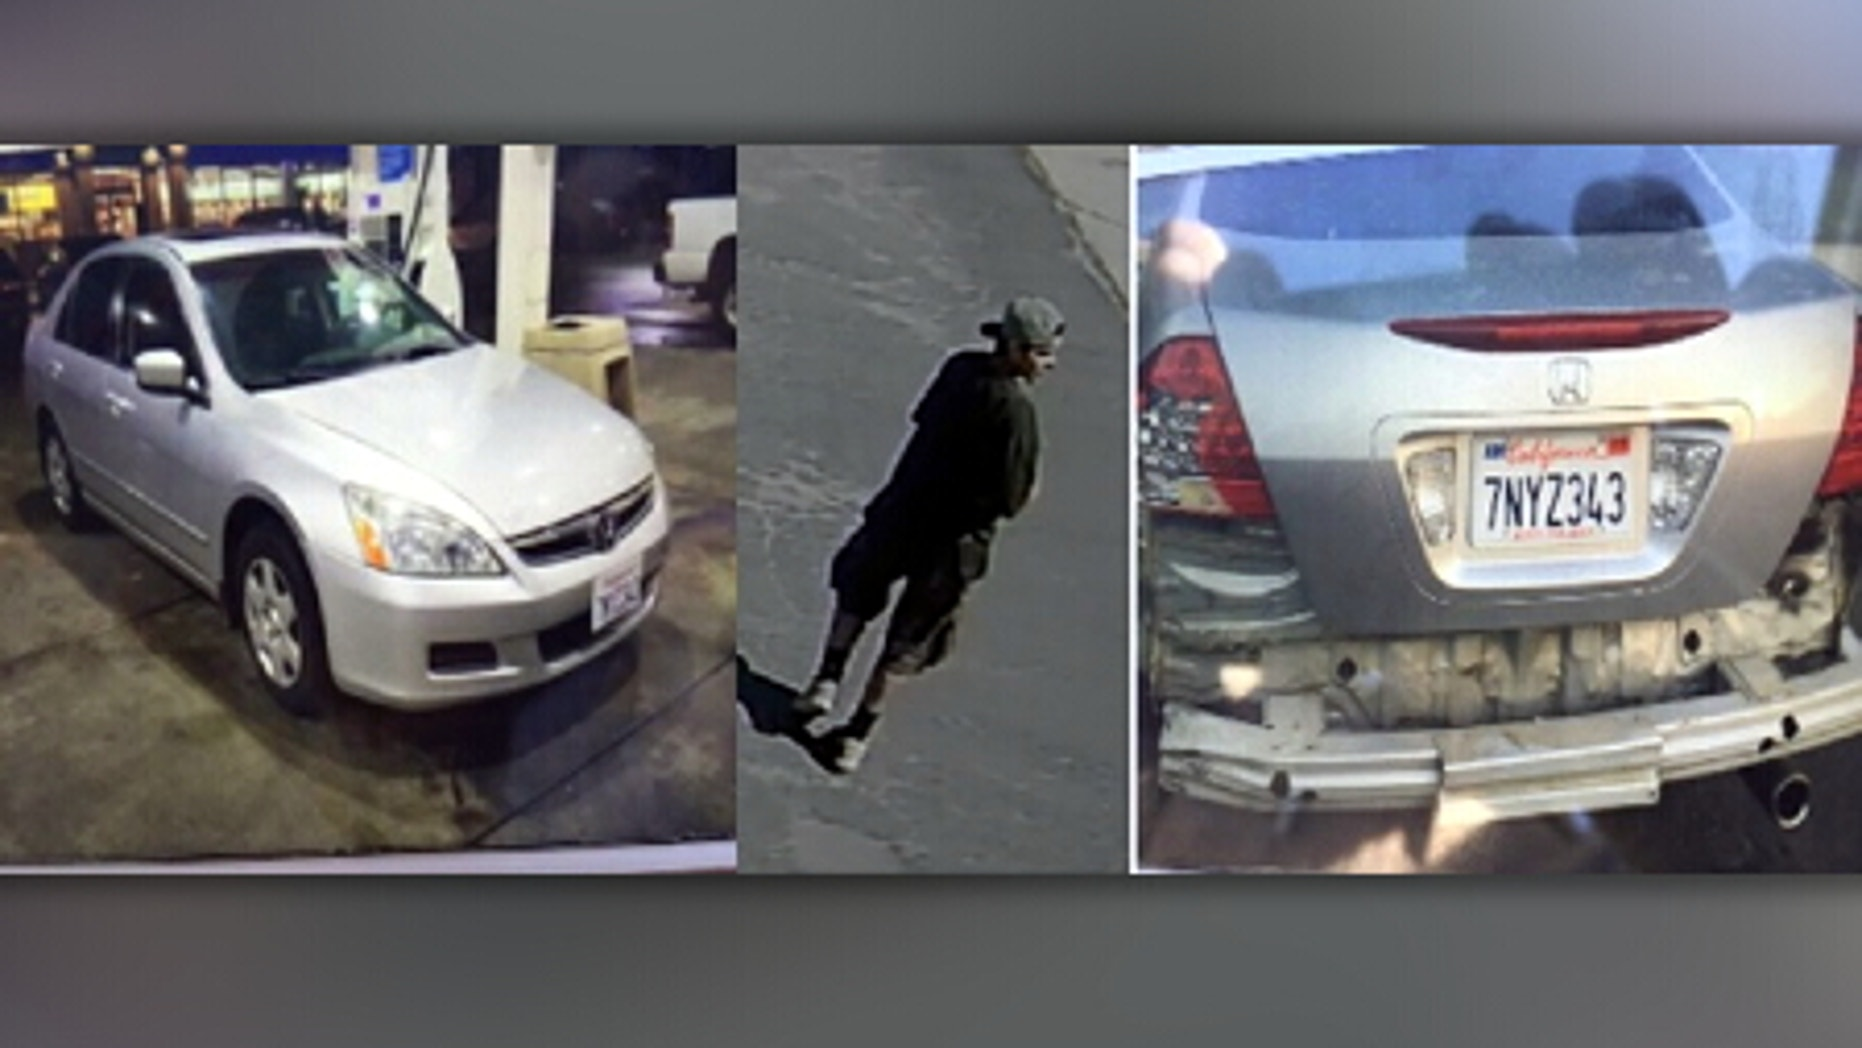 Images of the stolen car and the man police say took it.